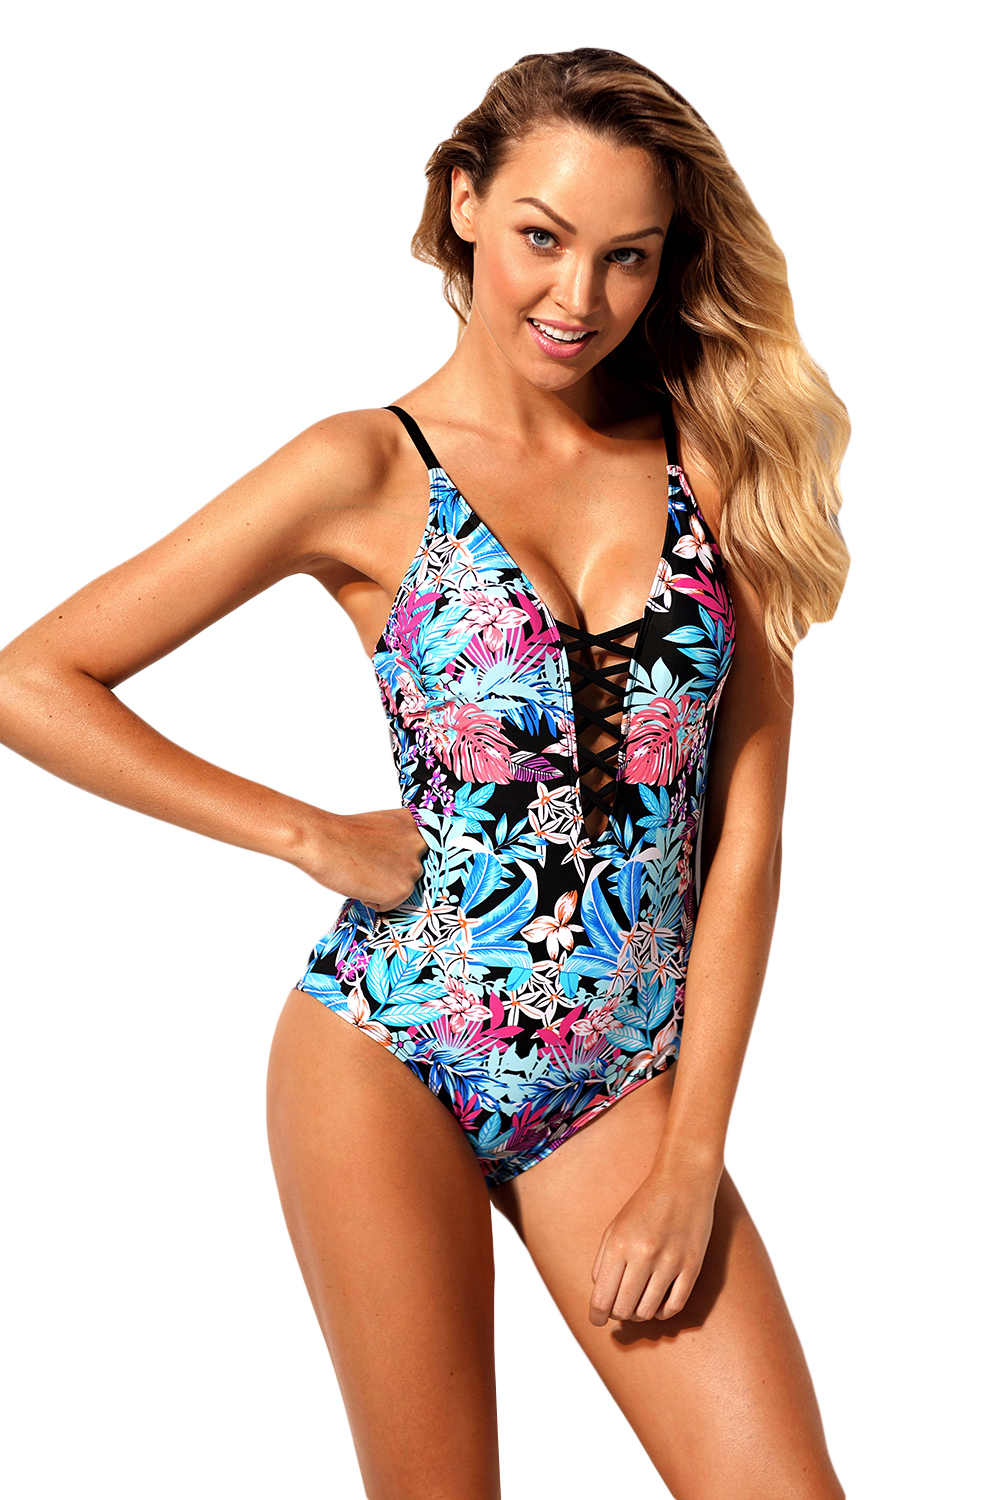 BY410516  Flourish Tropical Print Lace Up One Piece Swimsuit